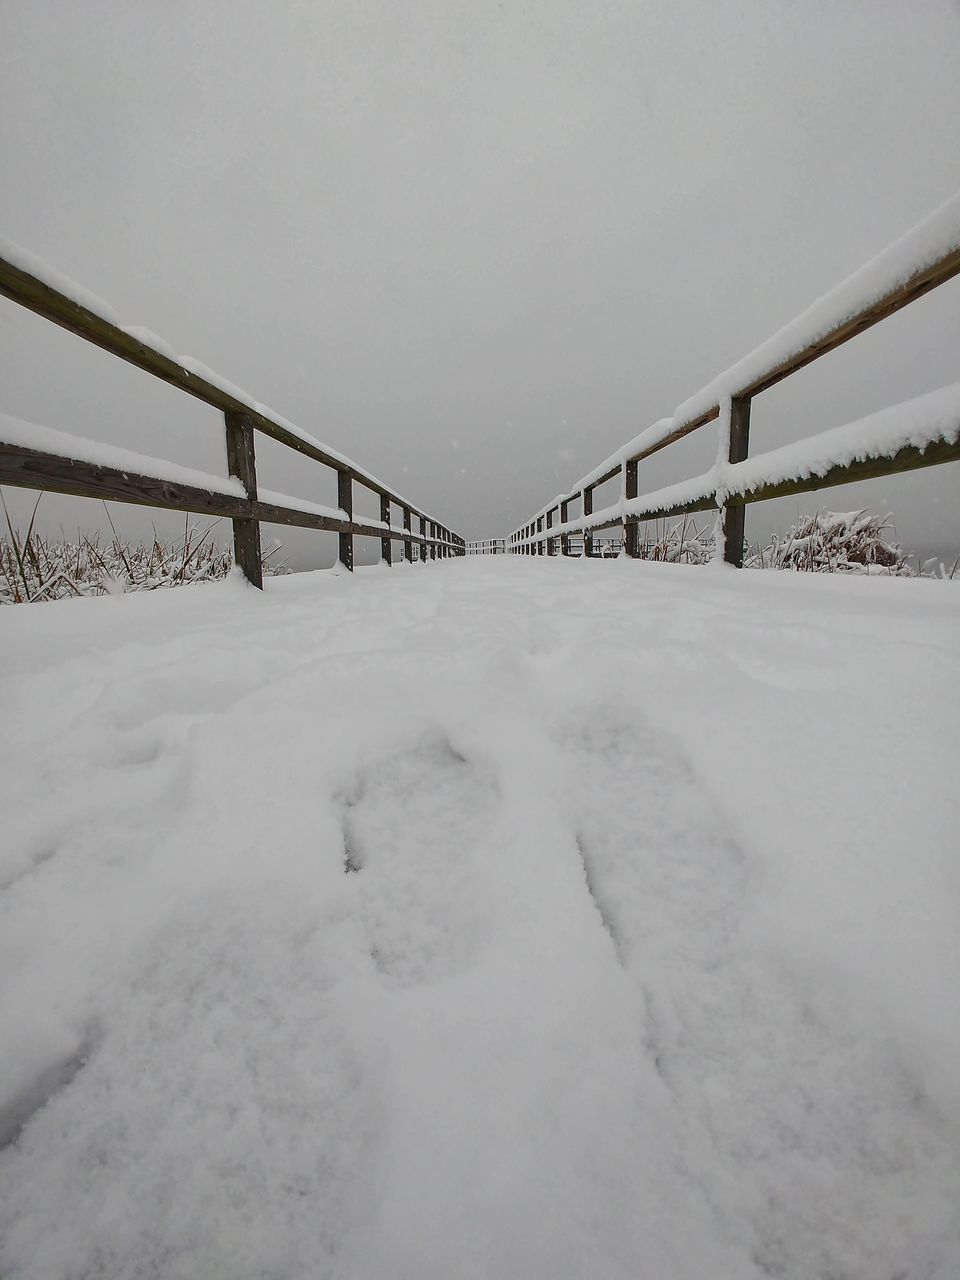 bridge - man made structure, snow, winter, cold temperature, connection, weather, railing, built structure, nature, outdoors, day, no people, architecture, clear sky, sky, beauty in nature